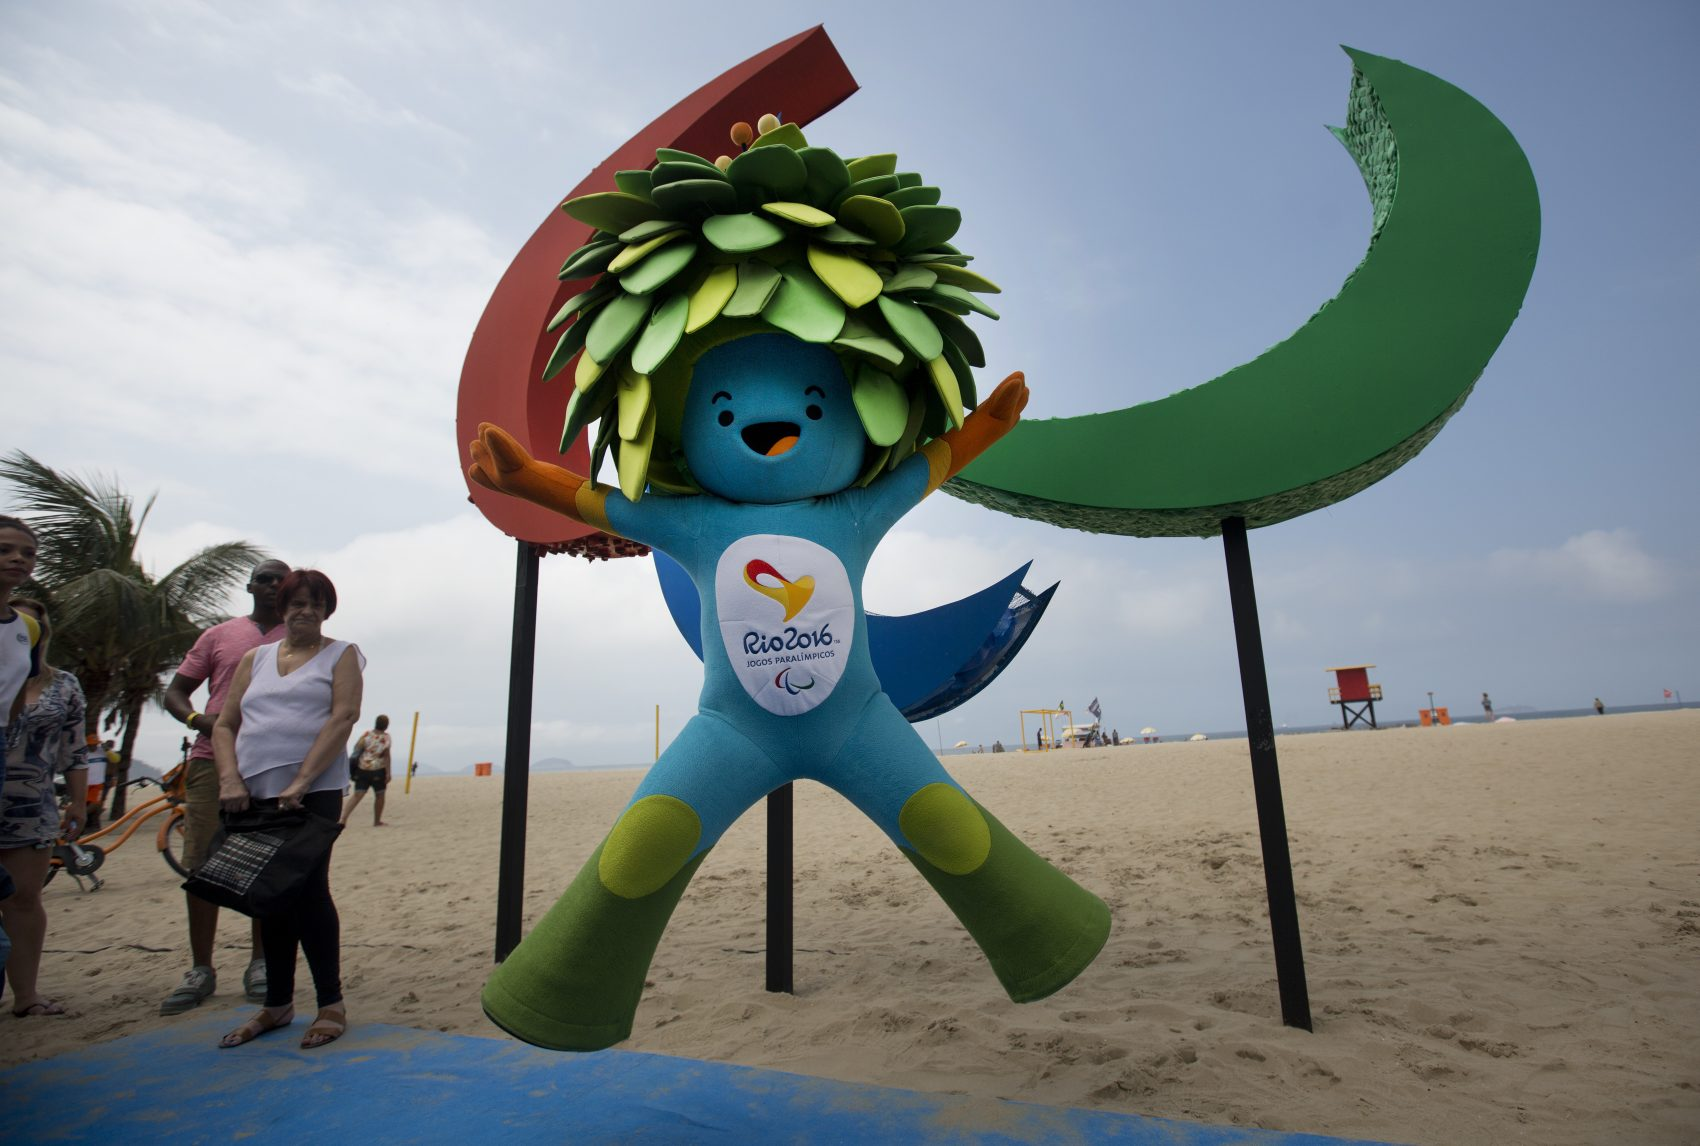 Tom, the mascot of the Rio Paralympics Games, jumps in front of the sculpture of Agitos, symbol of the Paralympic Games, on Copacabana beach in Rio de Janeiro. (Silvia Izquierdo/AP)